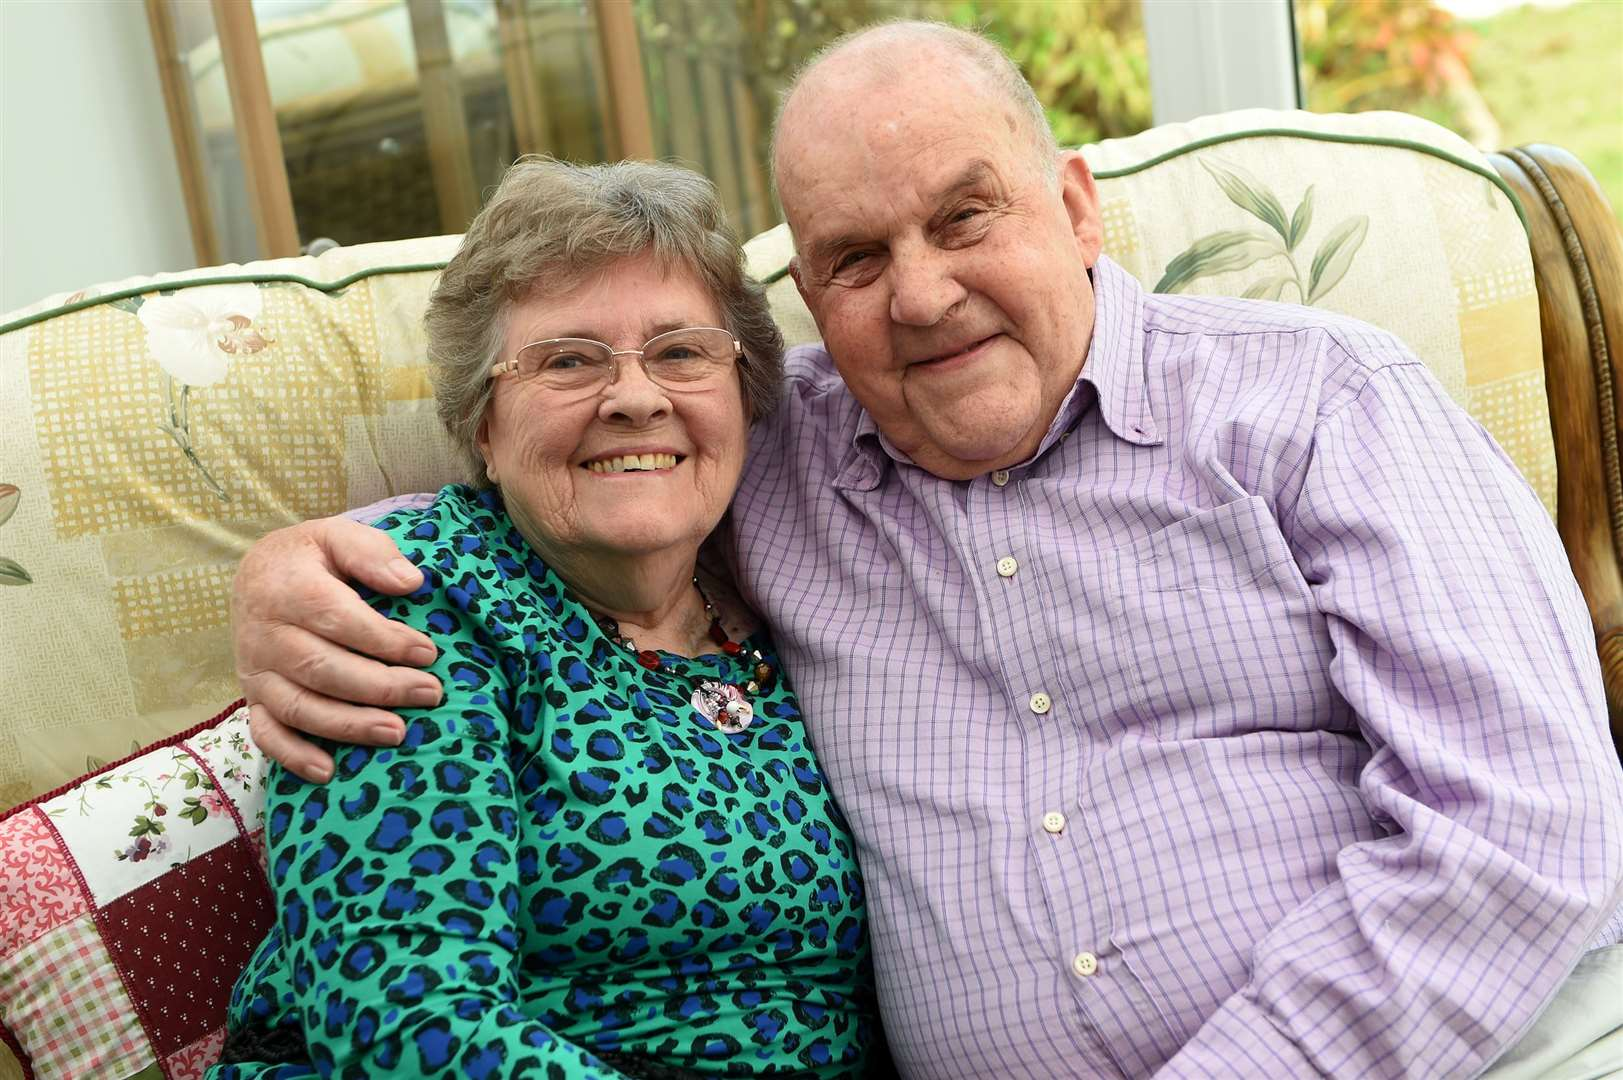 Pamela and Michael Soames, of Stowmarket, are celebrating their diamond wedding anniversary. Picture: Mecha Morton